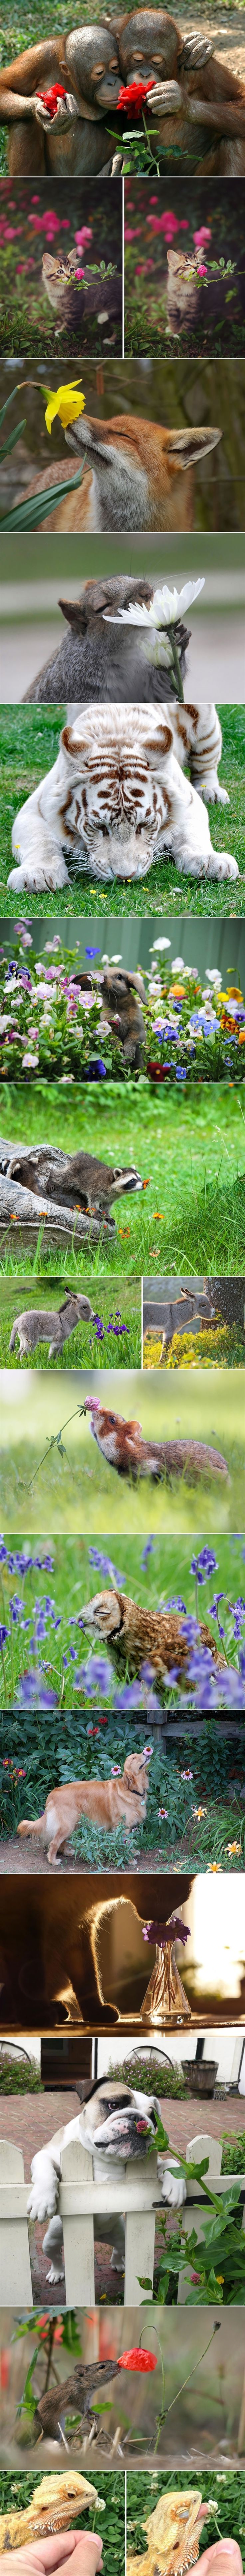 Animals Smelling Flowers – So Cute!